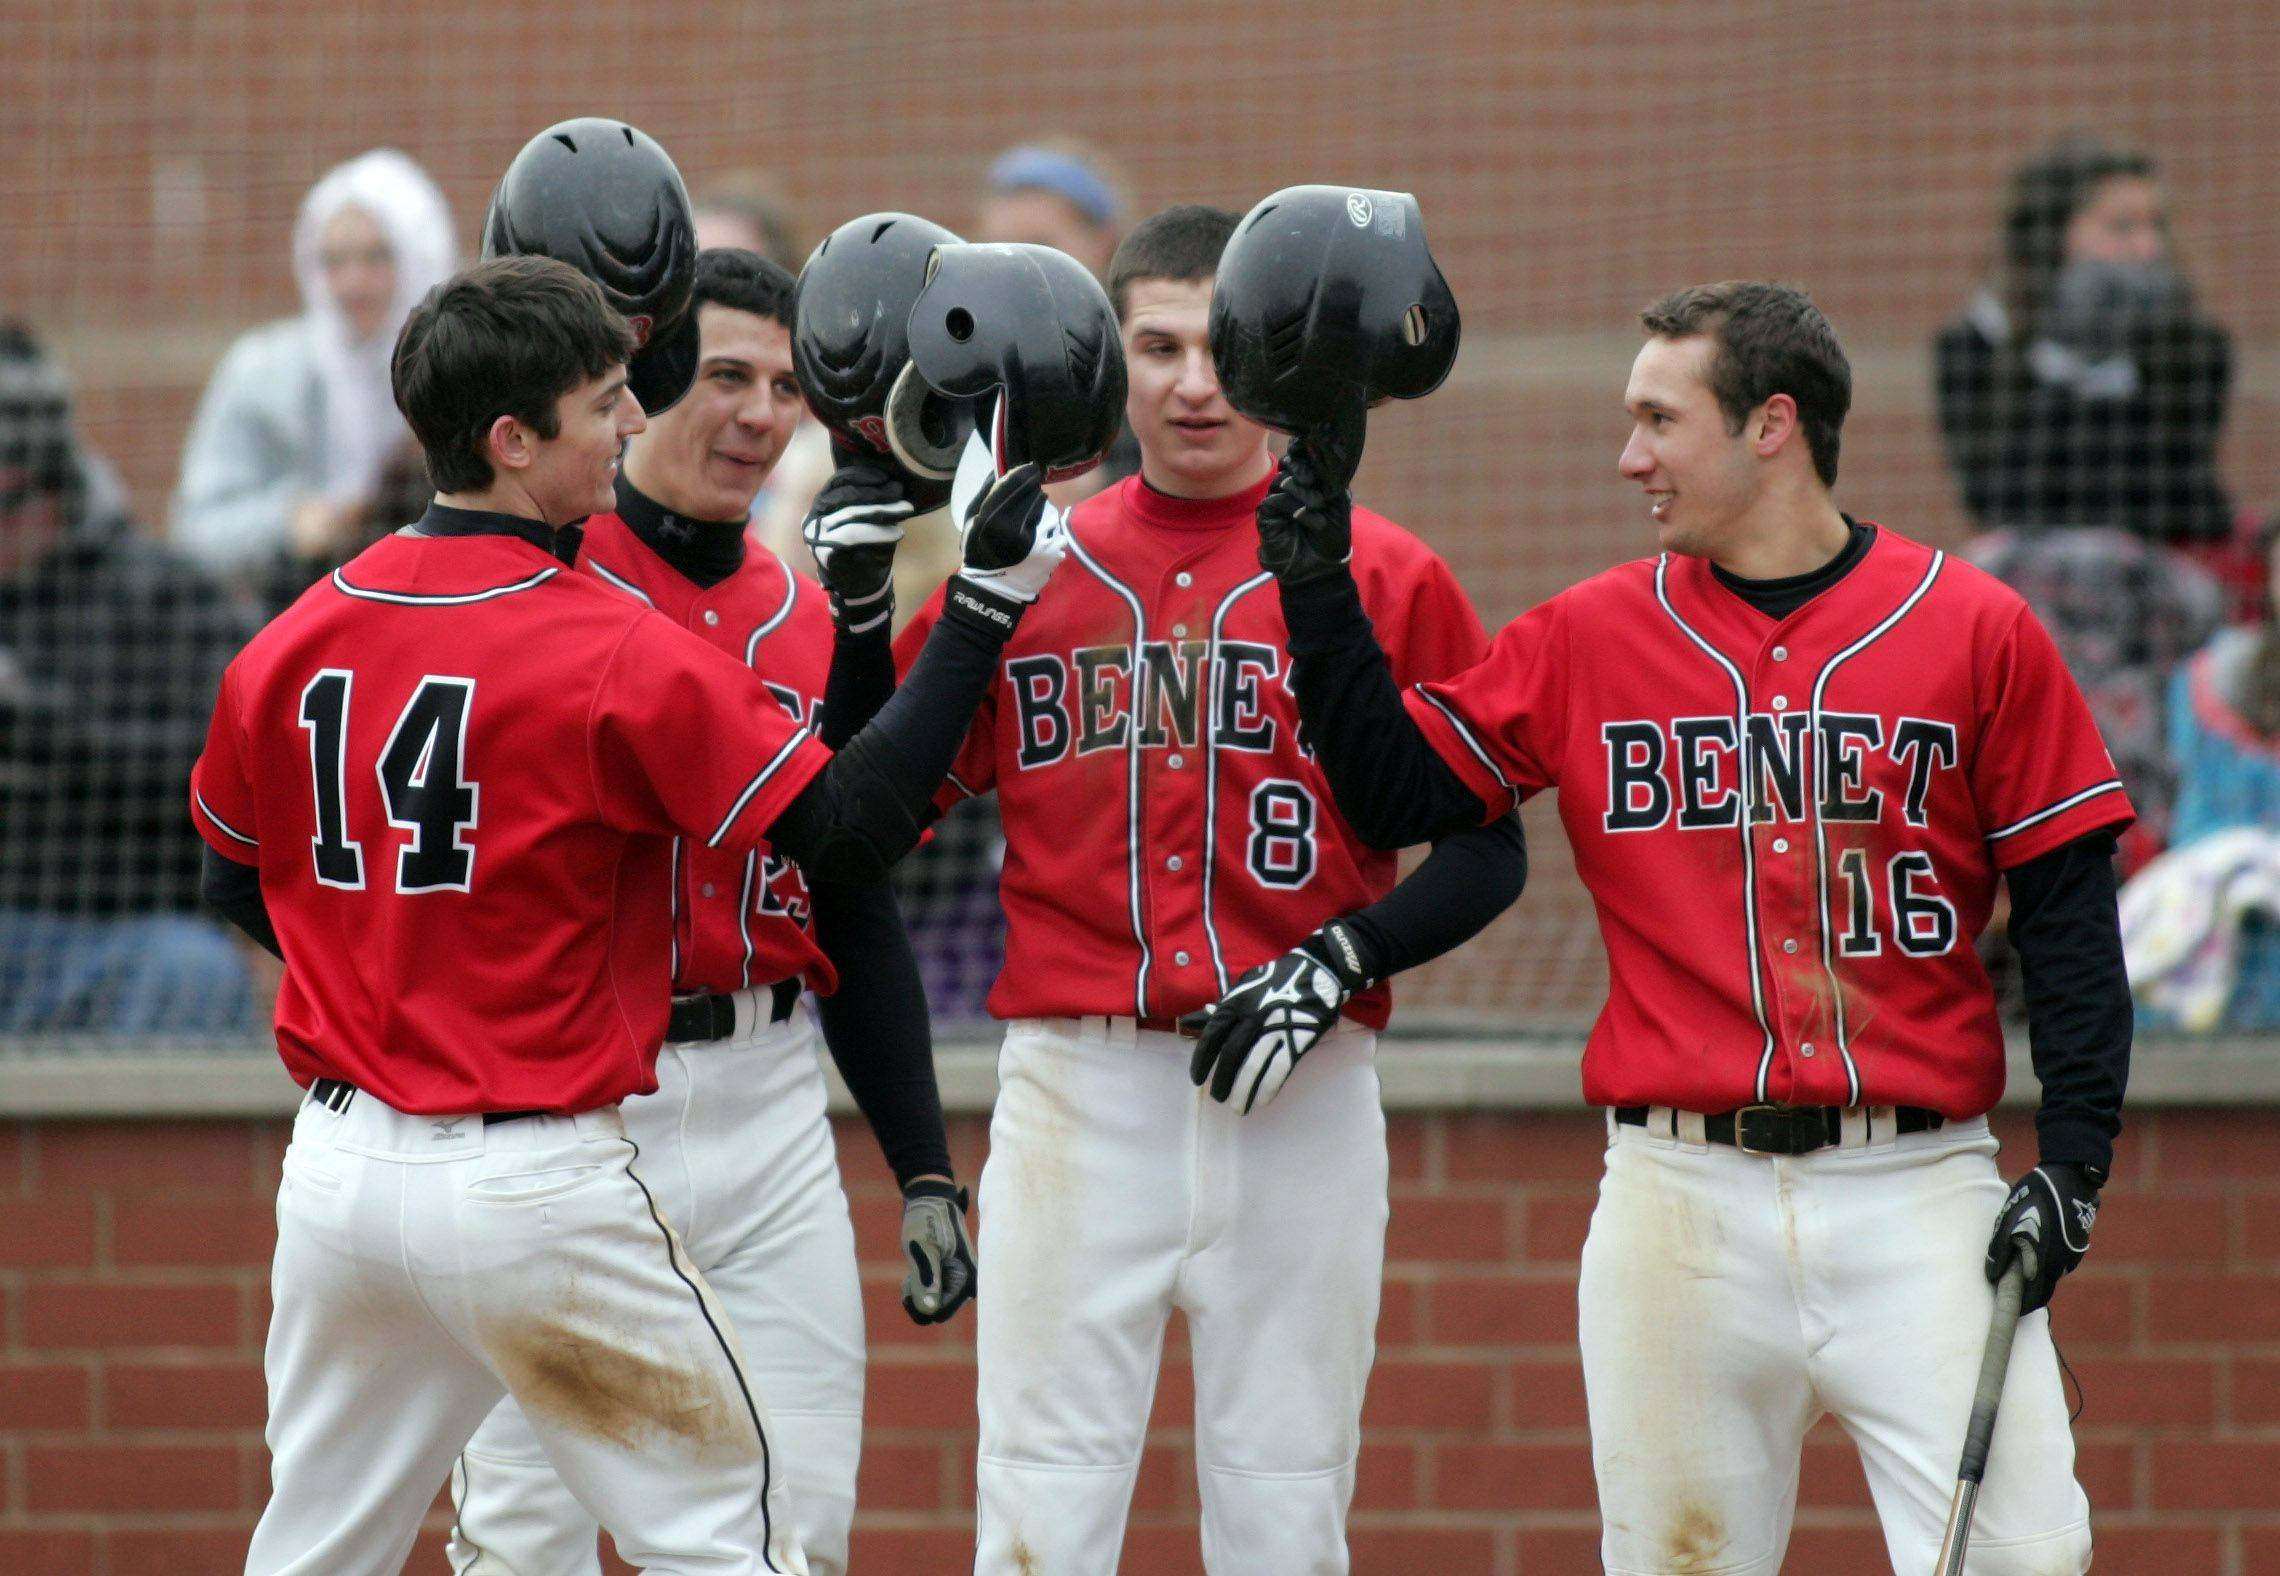 R. J. Gatto of Benet is greeted by teammates in the third inning after hitting a home run against Downers Grove North Tuesday in Lisle.